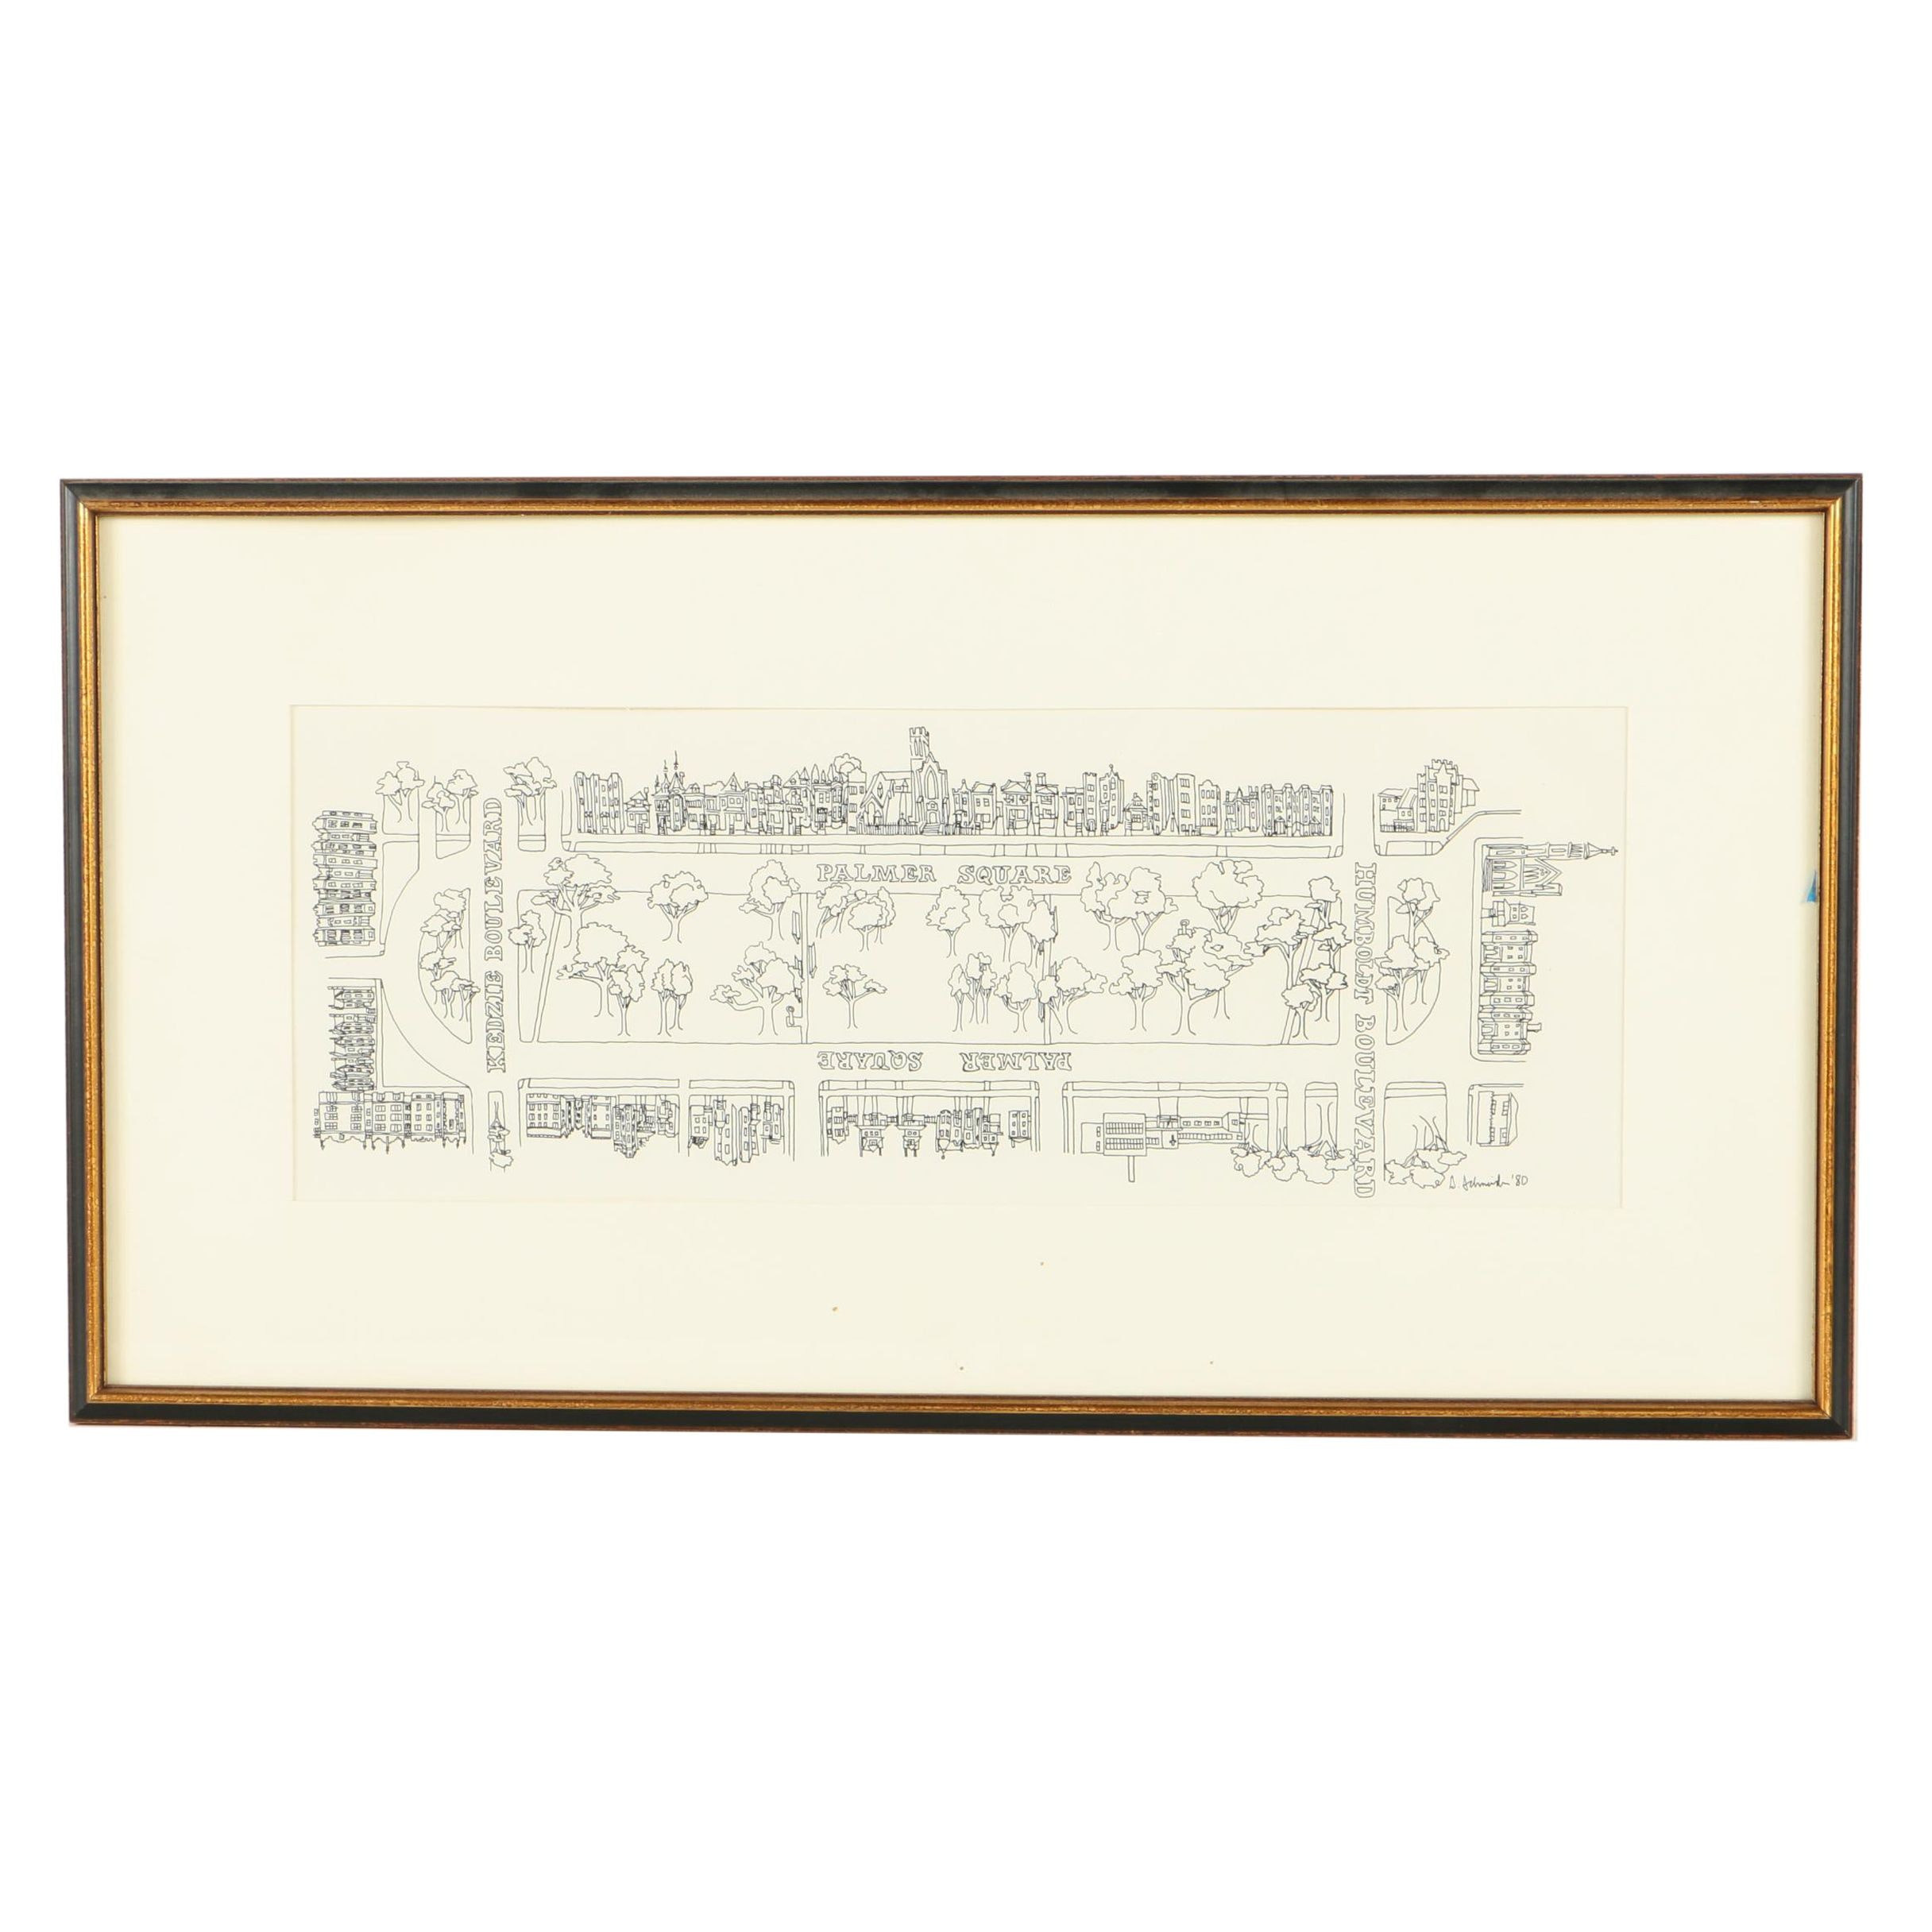 Signed Serigraph Print After Ink Drawing of Logan Square Neighborhood, Chicago